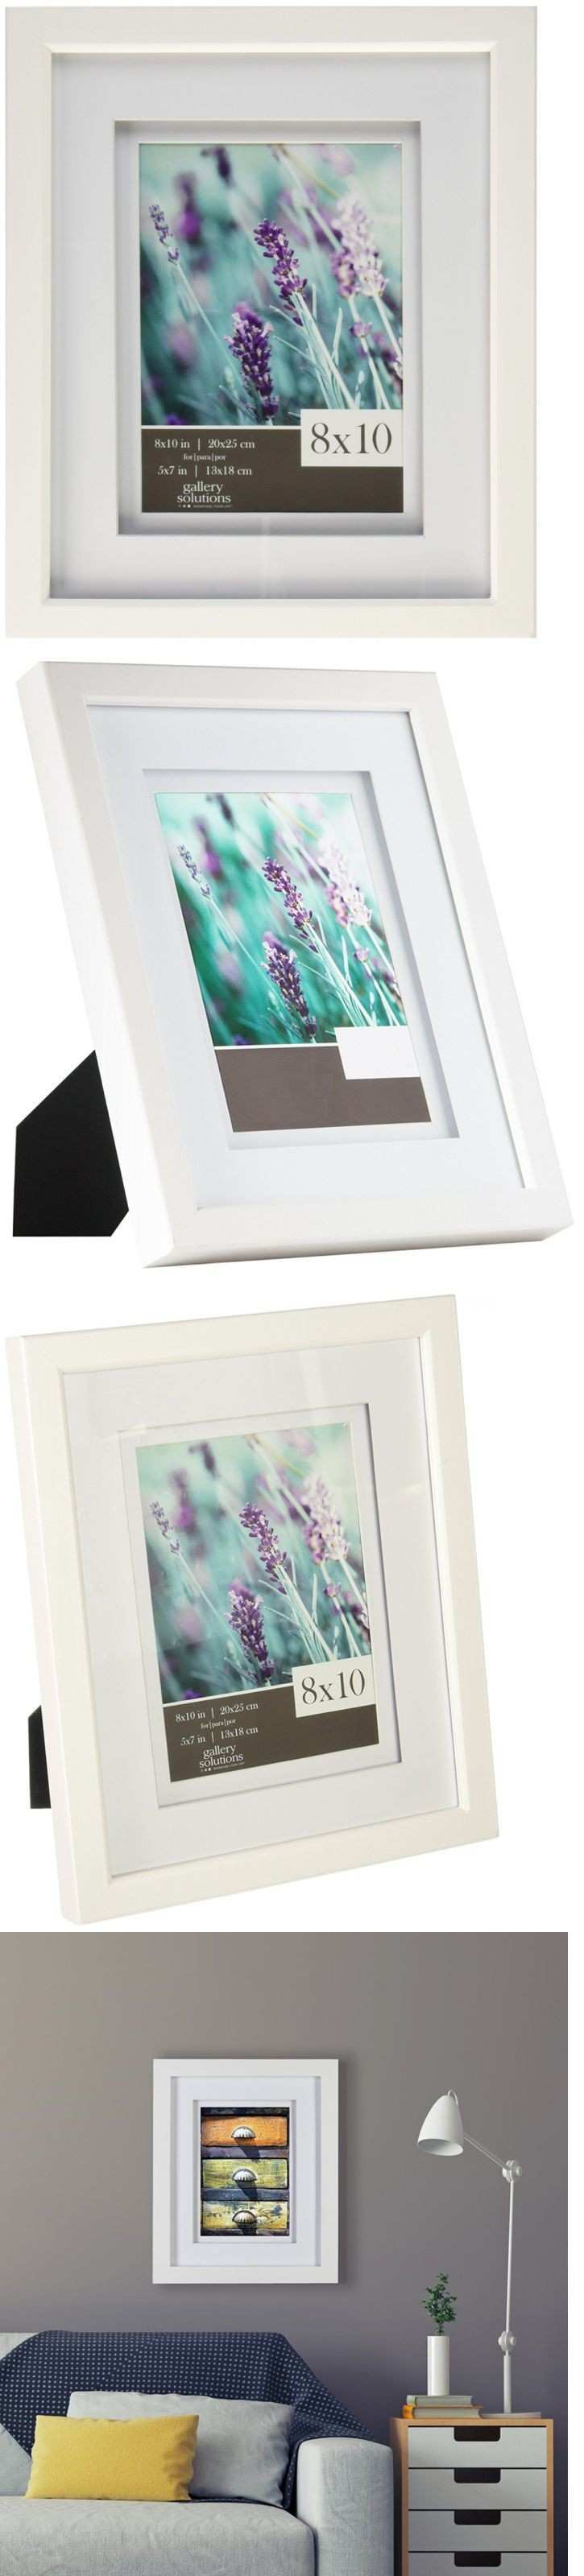 439 best Other Framing and Matting images on Pinterest